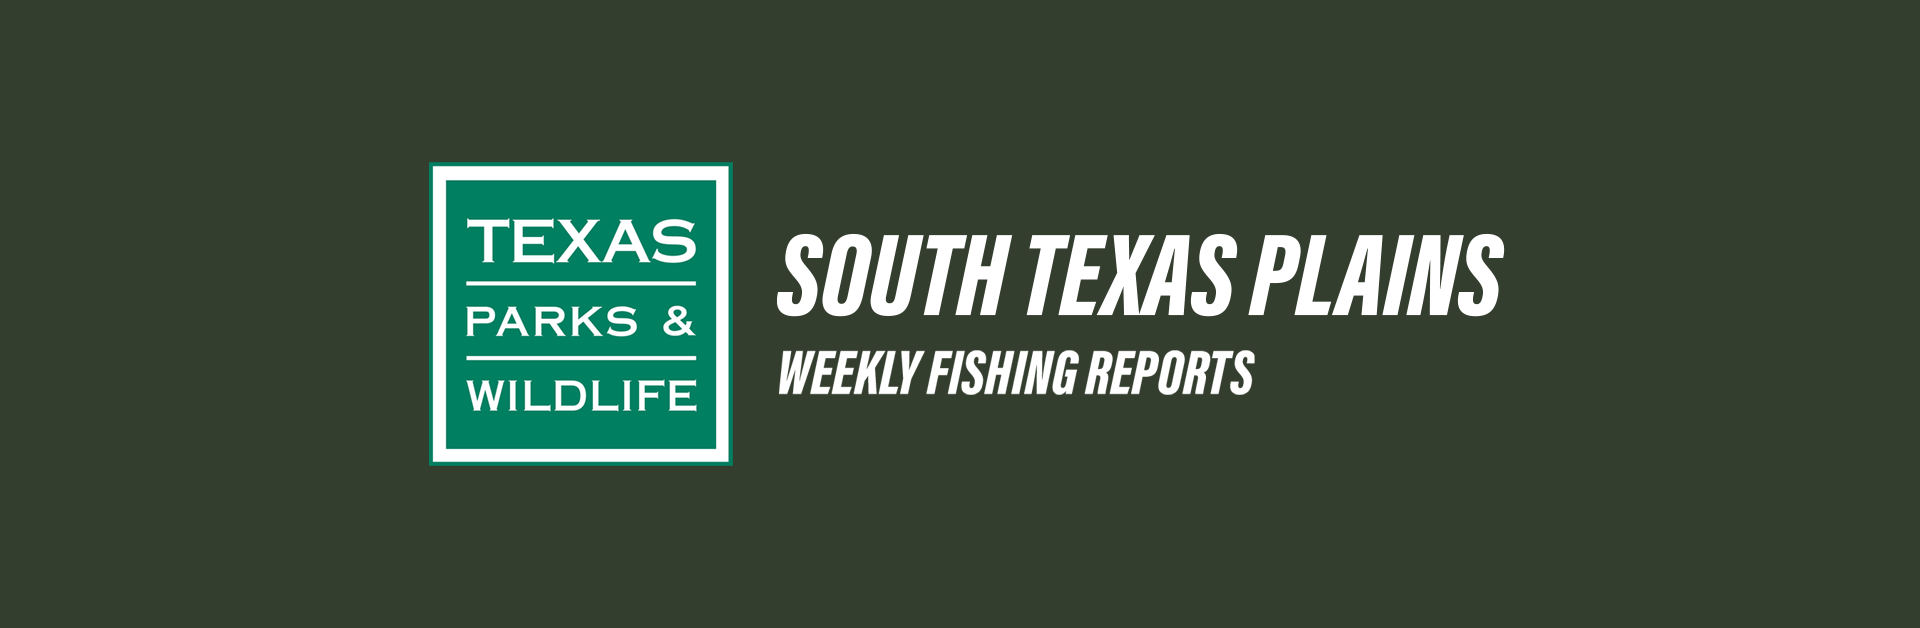 SOUTH TEXAS PLAINS | WEEK OF 12/4/19